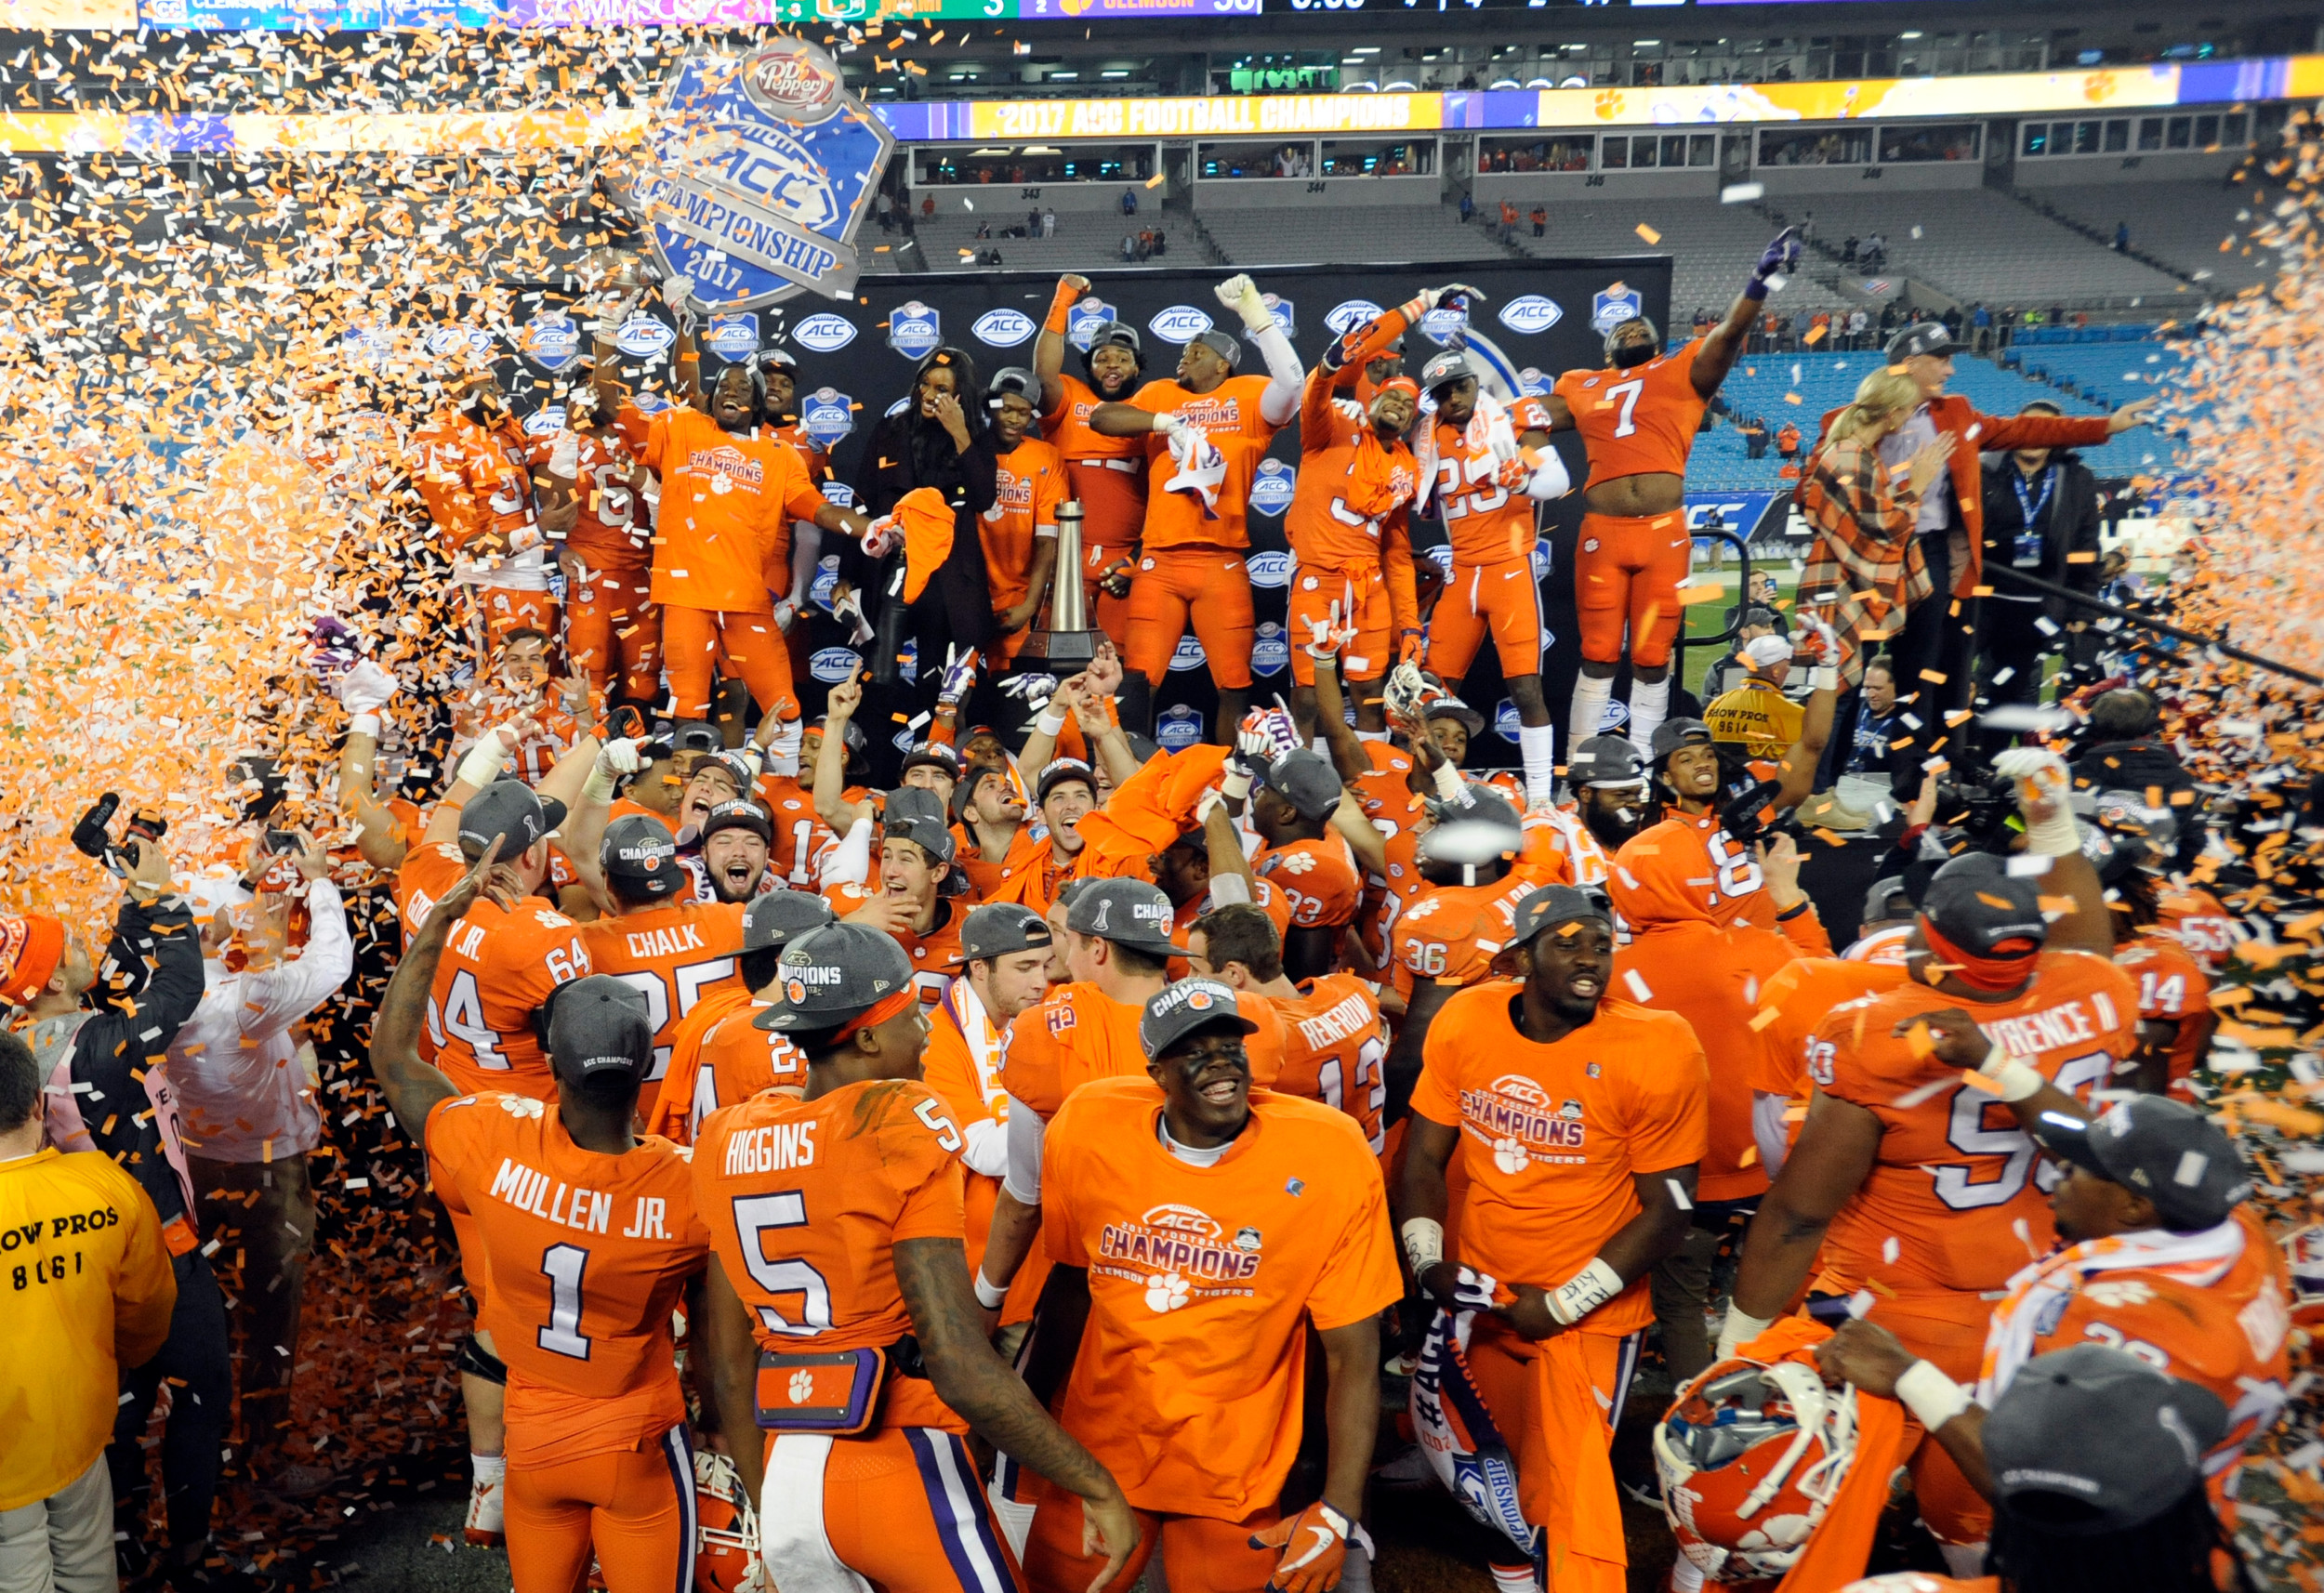 Clemson players celebrate after winning the Atlantic Coast Conference championship game over Miami 38-3 on Saturday in Charlotte. The Tigers will meet Alabama for the third straight year in the College Football Playoff, this time in the Sugar Bowl in a semifinal game on Jan. 1